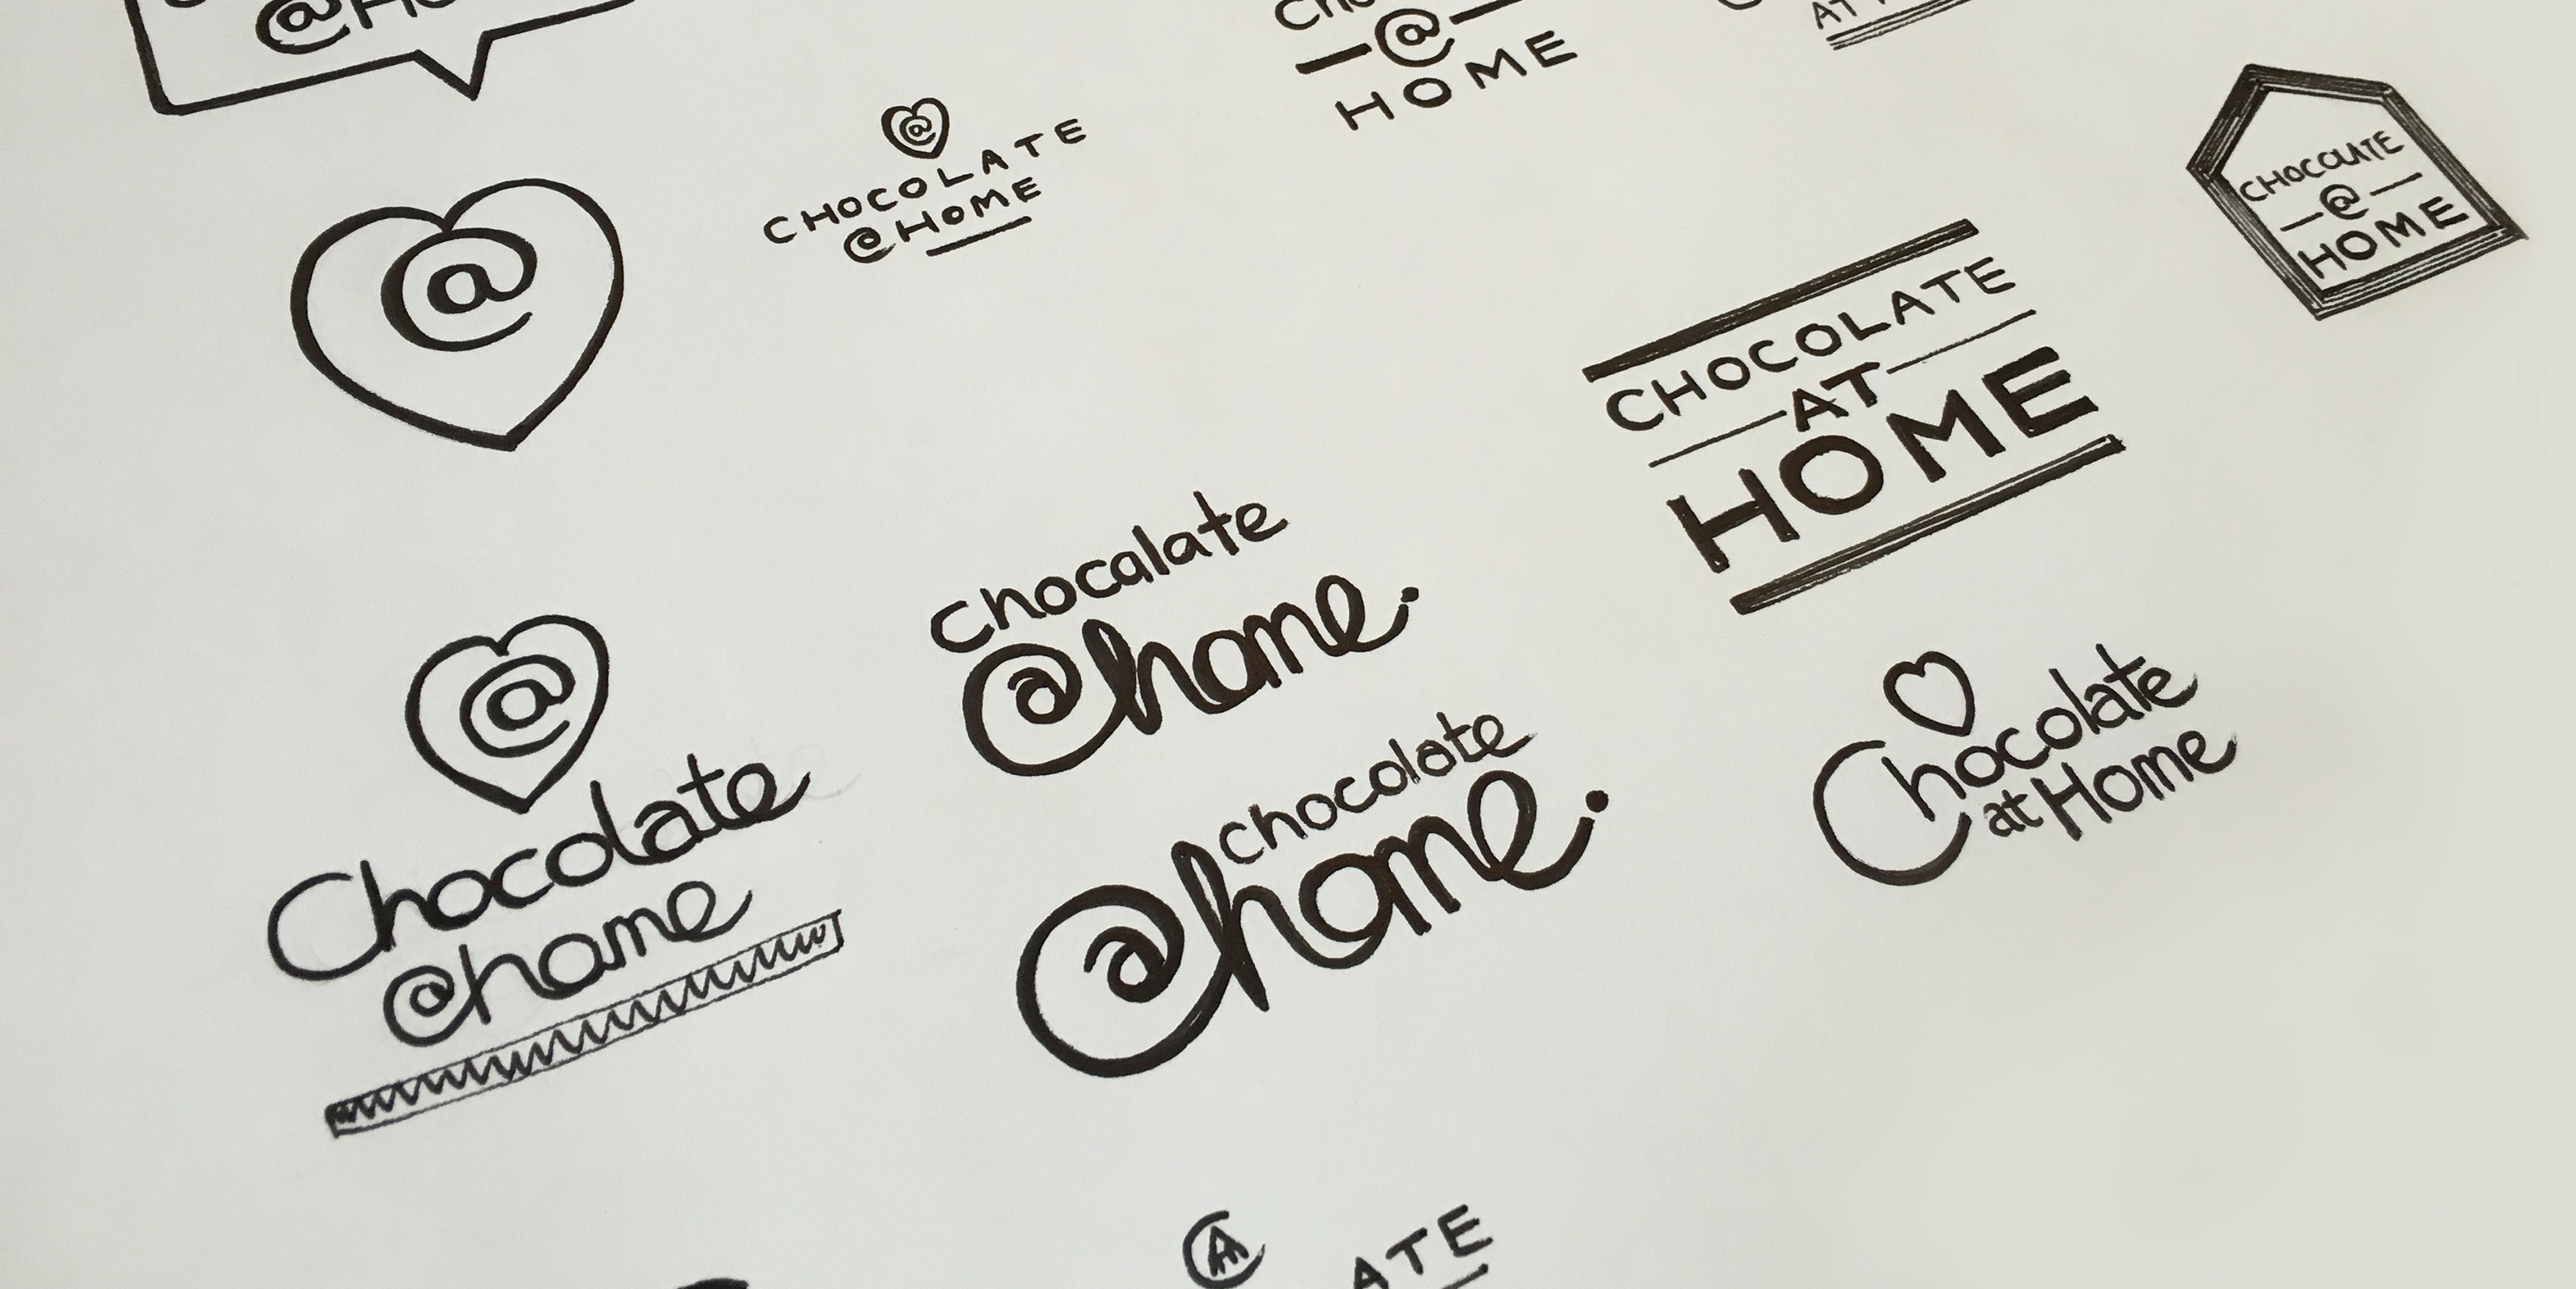 Chocolate Branding and Packaging Sketched Concepts